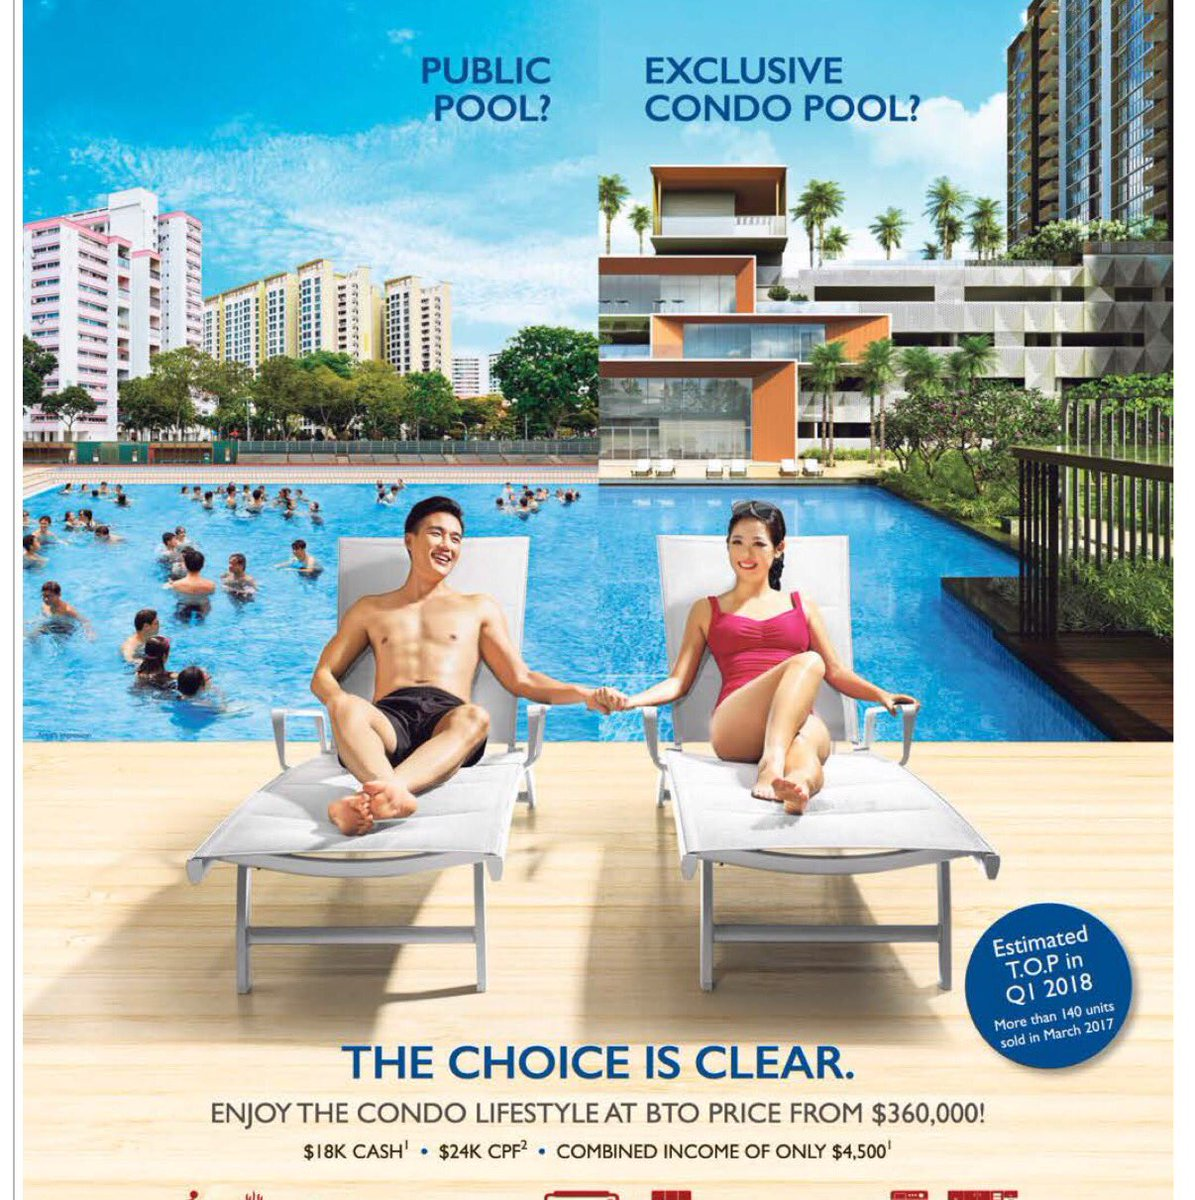 Swimming Pool Marketing : Jose raymond 乔立盟 🇸🇬 on twitter quot this is unacceptable